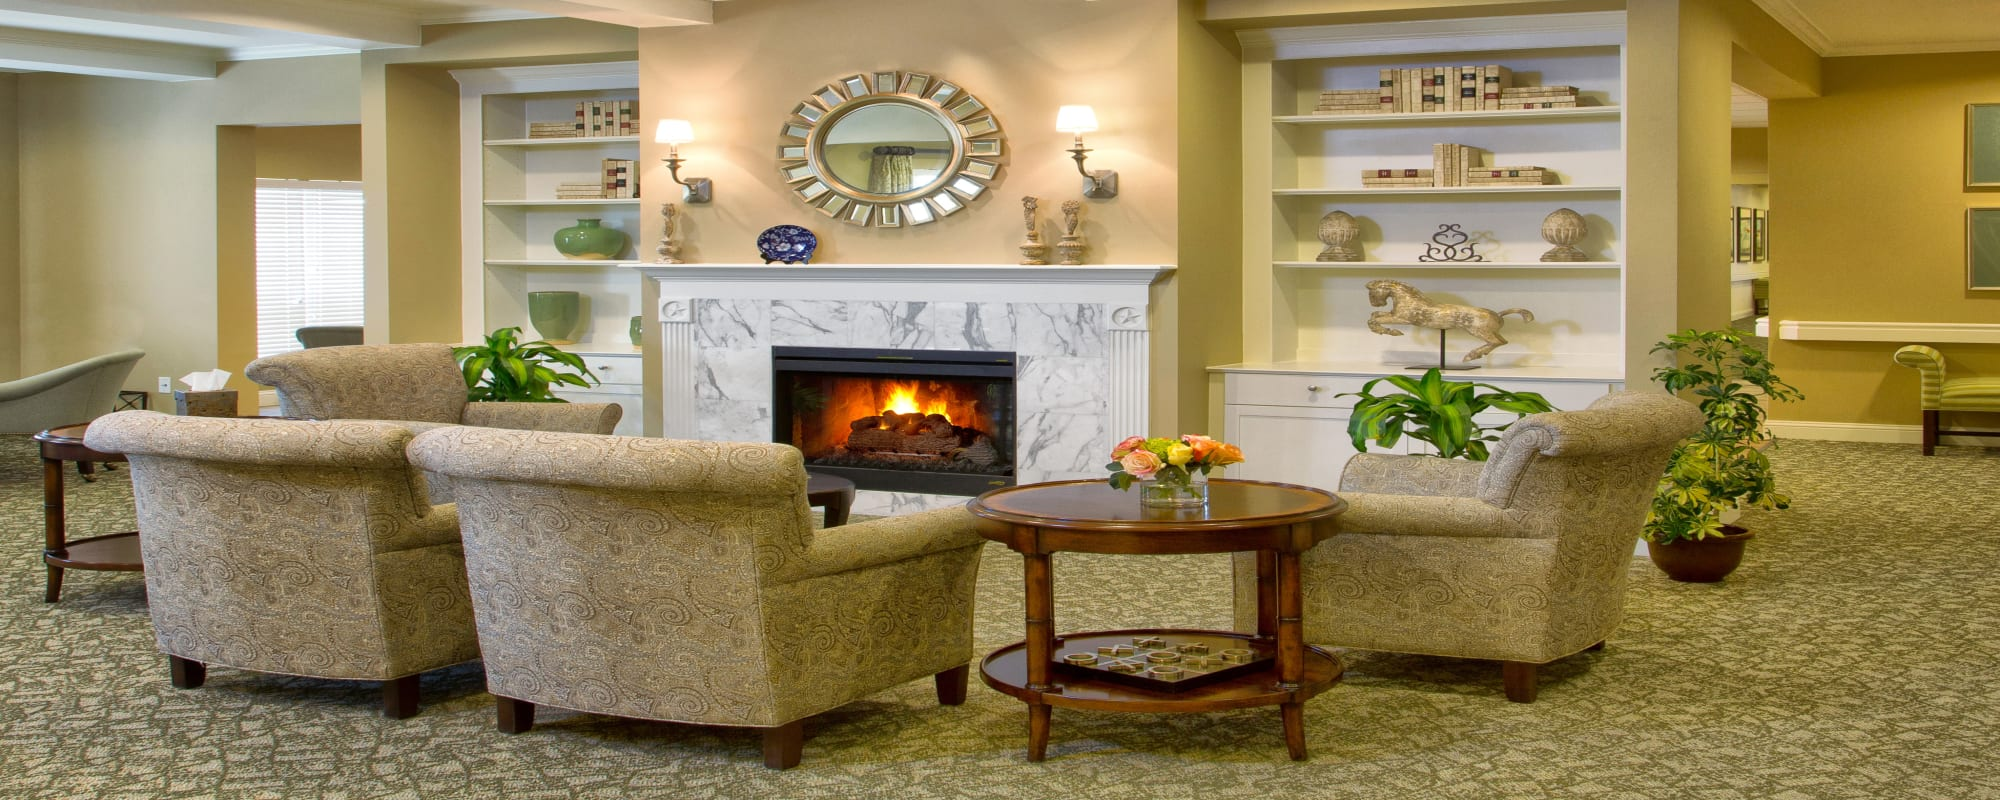 senior living in triangle state Austin Texas